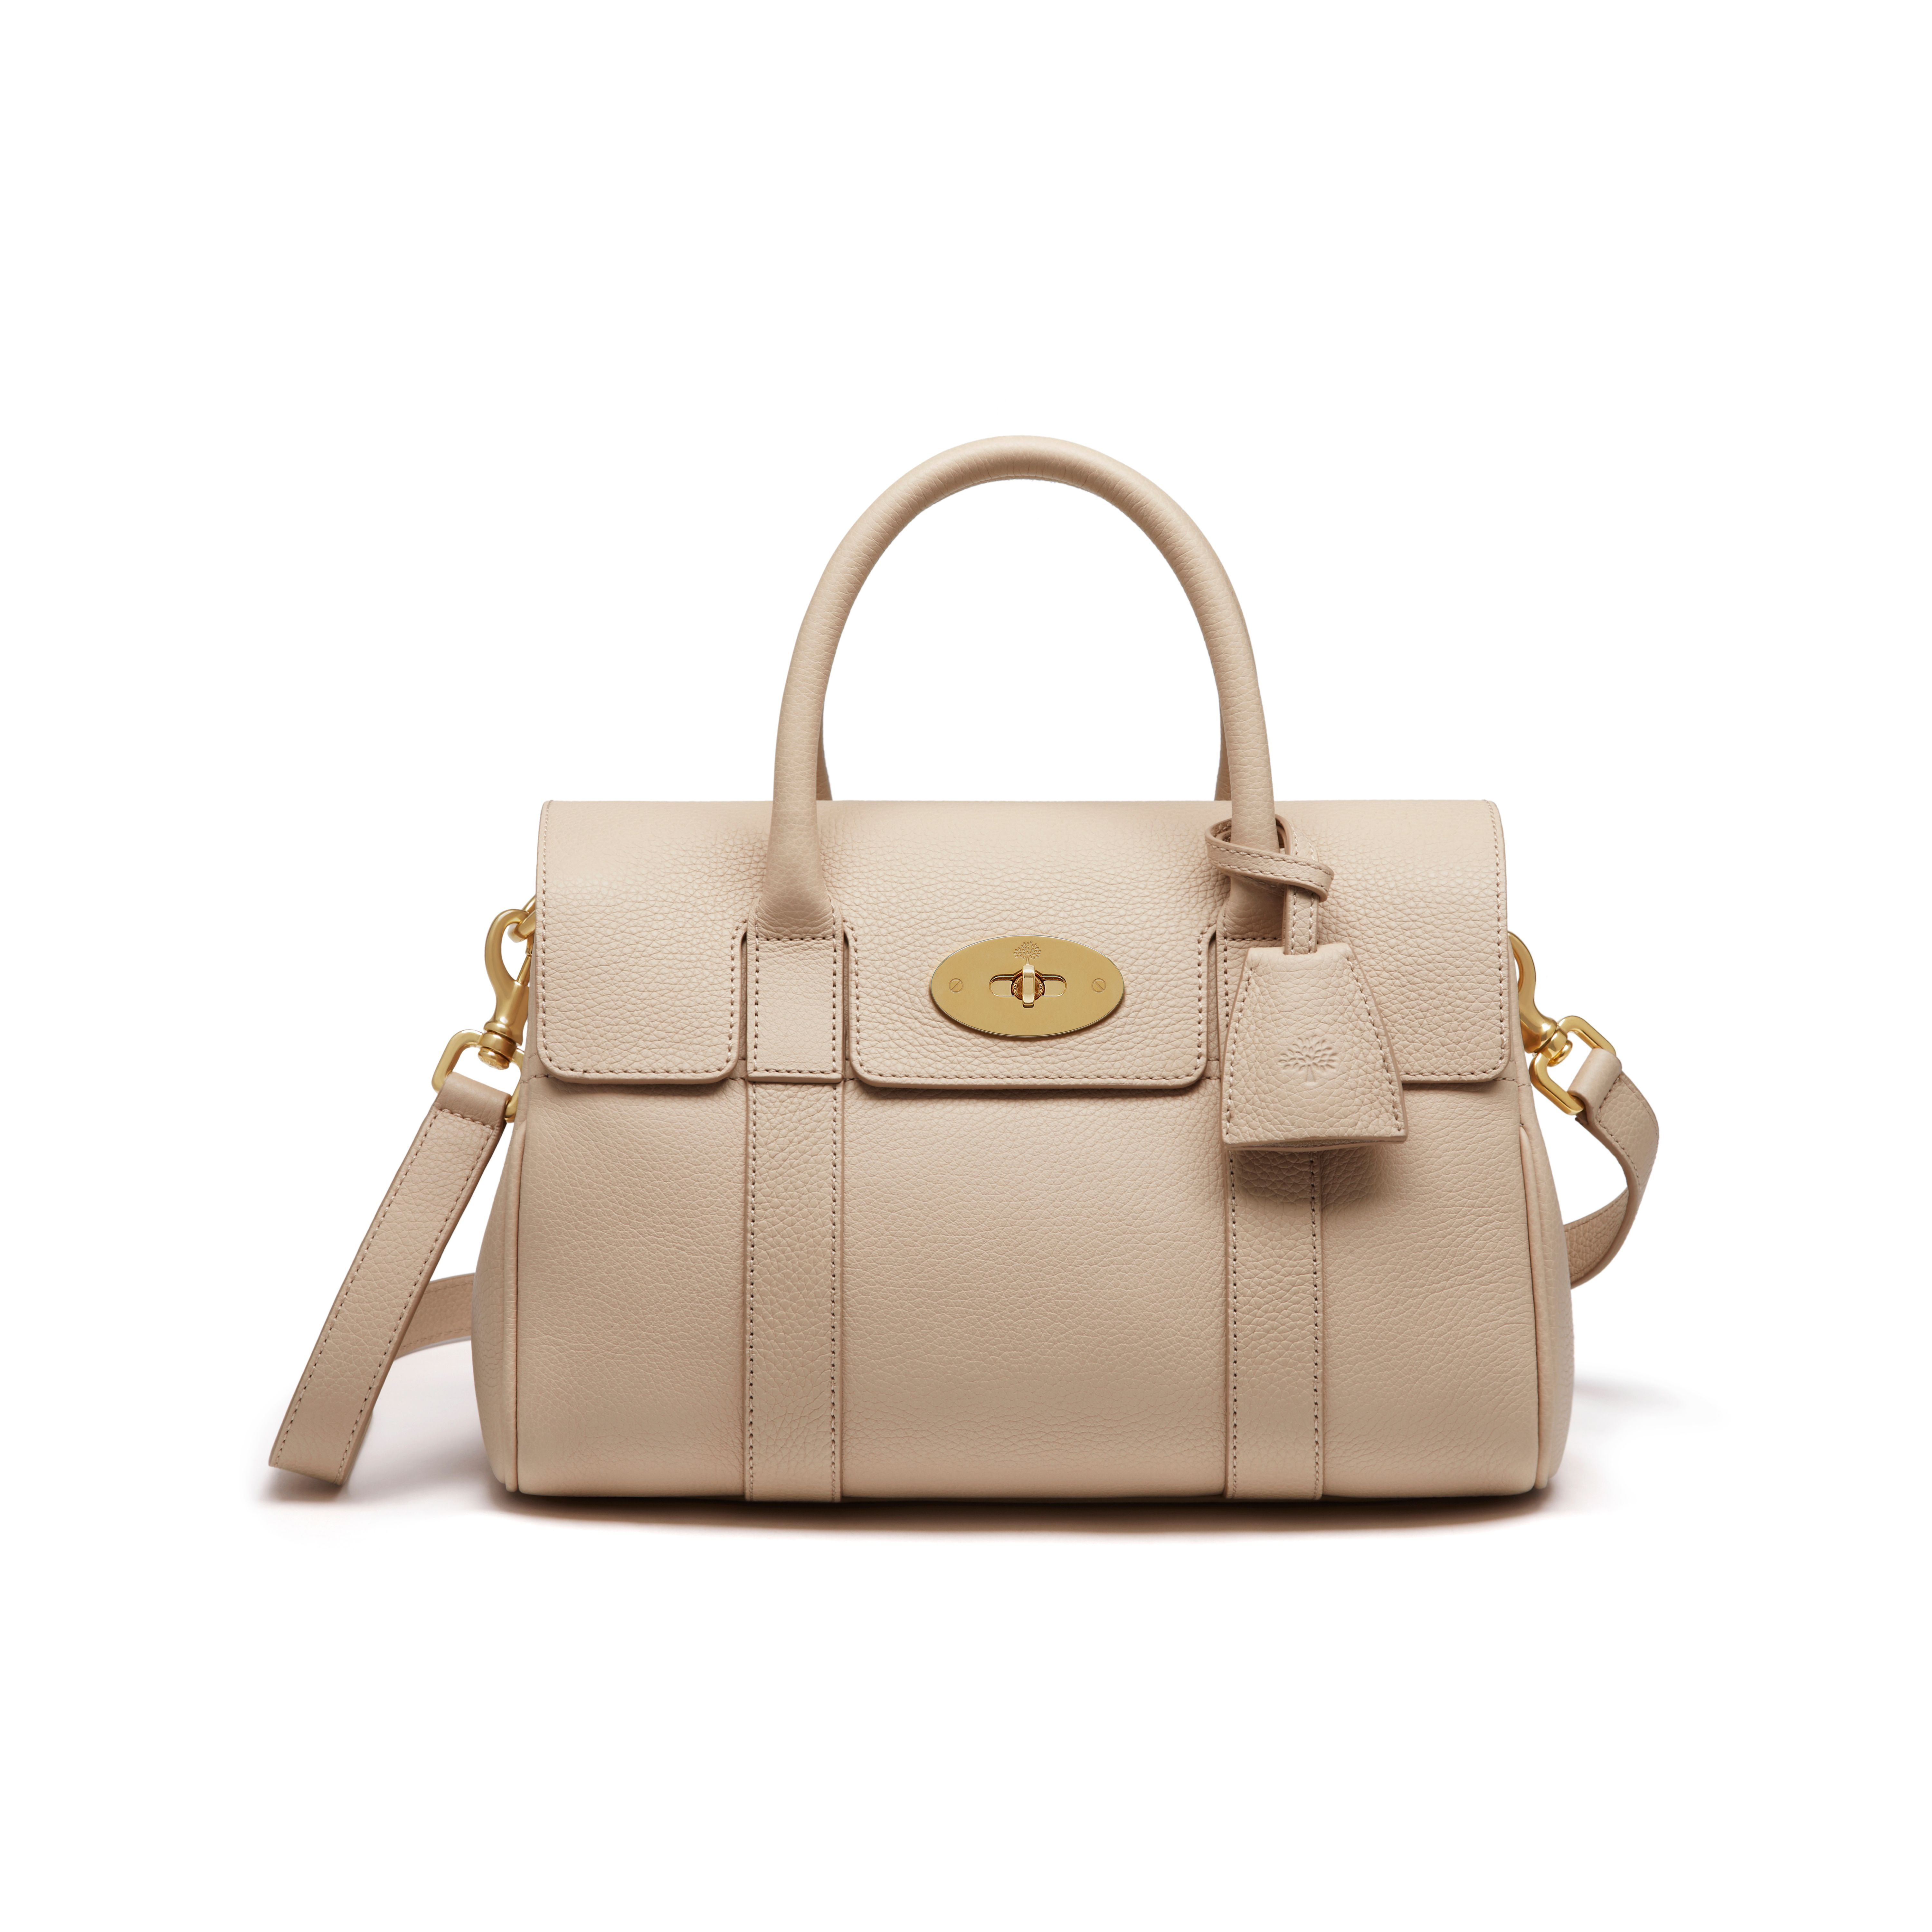 c535e6bf8e ... czech buy your mulberry small bayswater satchel bag online now at house  of fraser. 28668